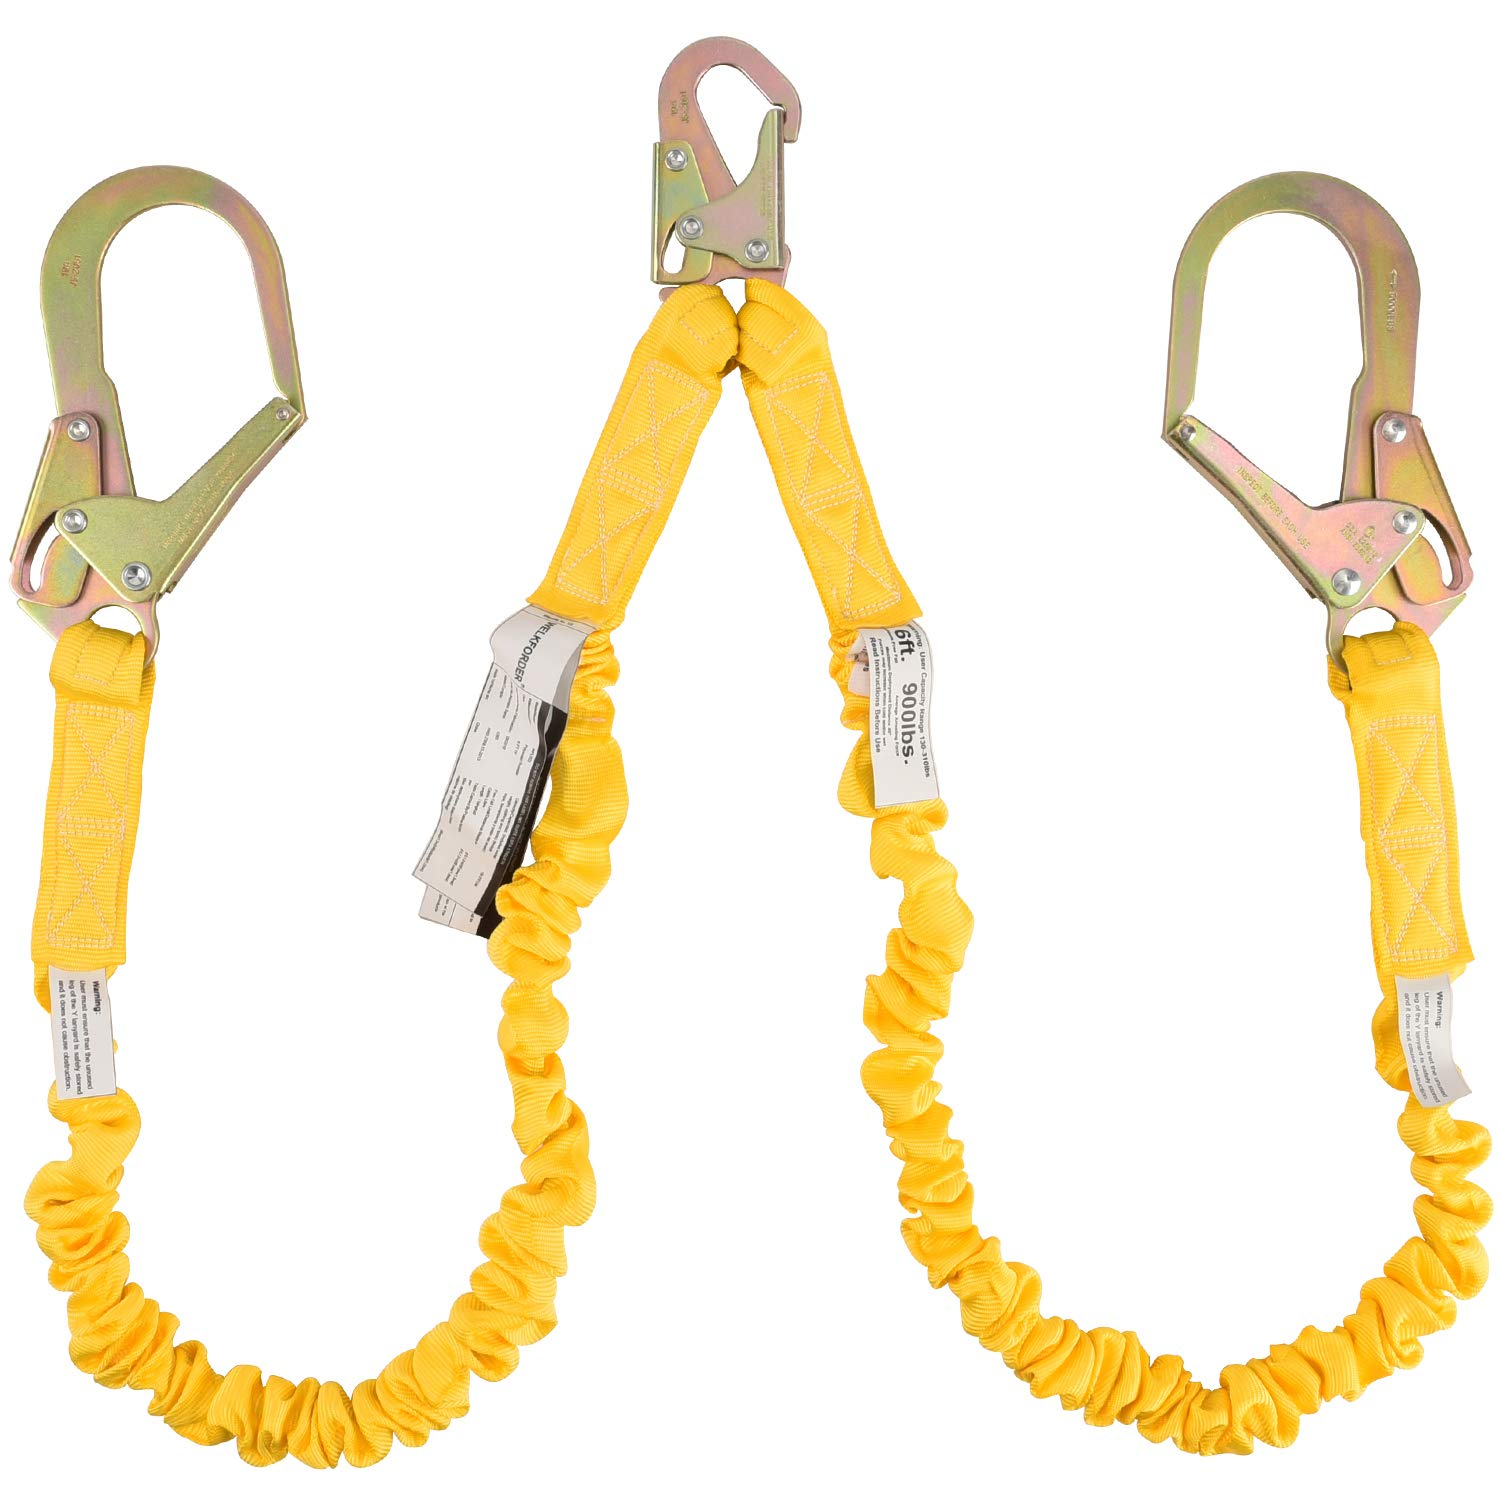 WELKFORDER Double Leg 6-Foot Fall Protection Internal Shock Absorbing Stretchable Safety Lanyard with Snap & Rebar Hook Connectors ANSI Complaint by WELKFORDER